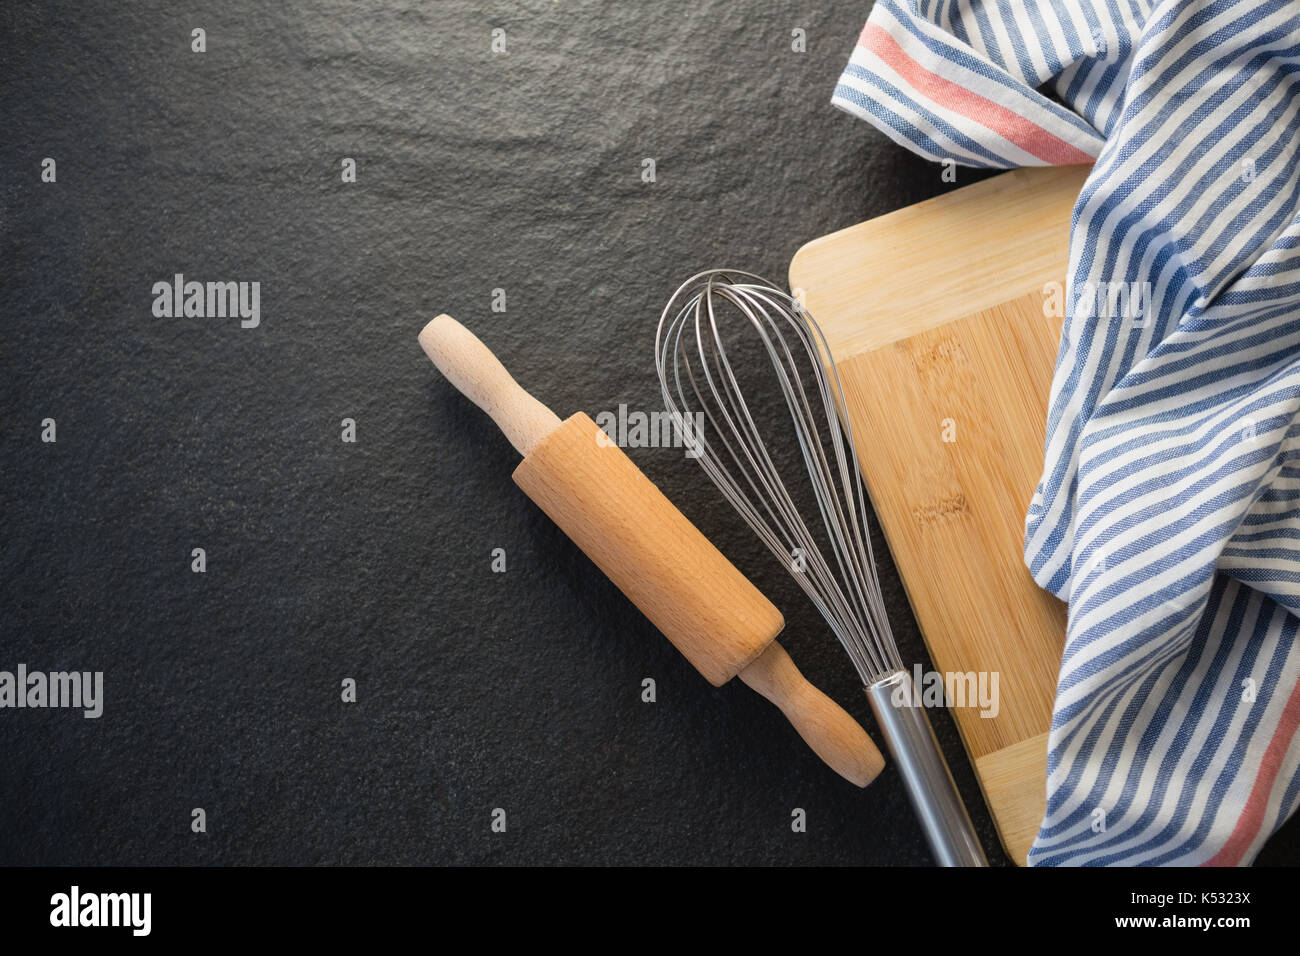 Overhead view of kitchen utensils with napkin on table - Stock Image